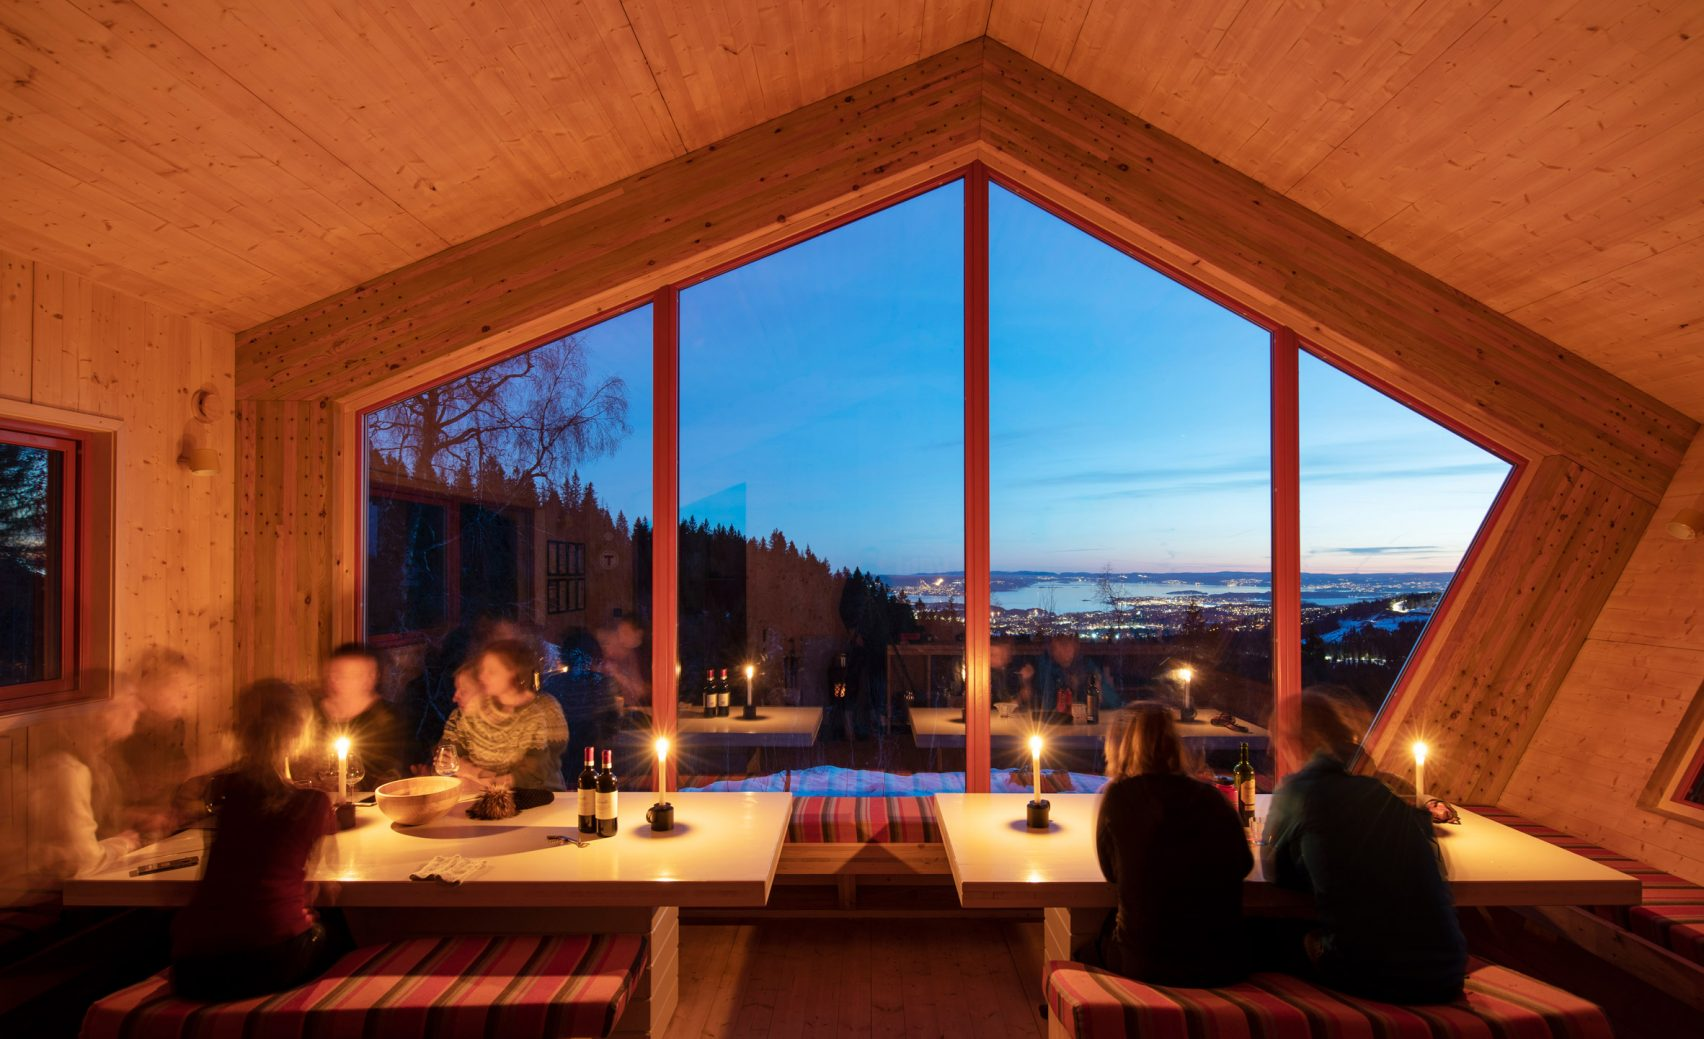 Fuglemyrhytta self-service cabin overlooking the Oslofjord in Norway by Snøhetta